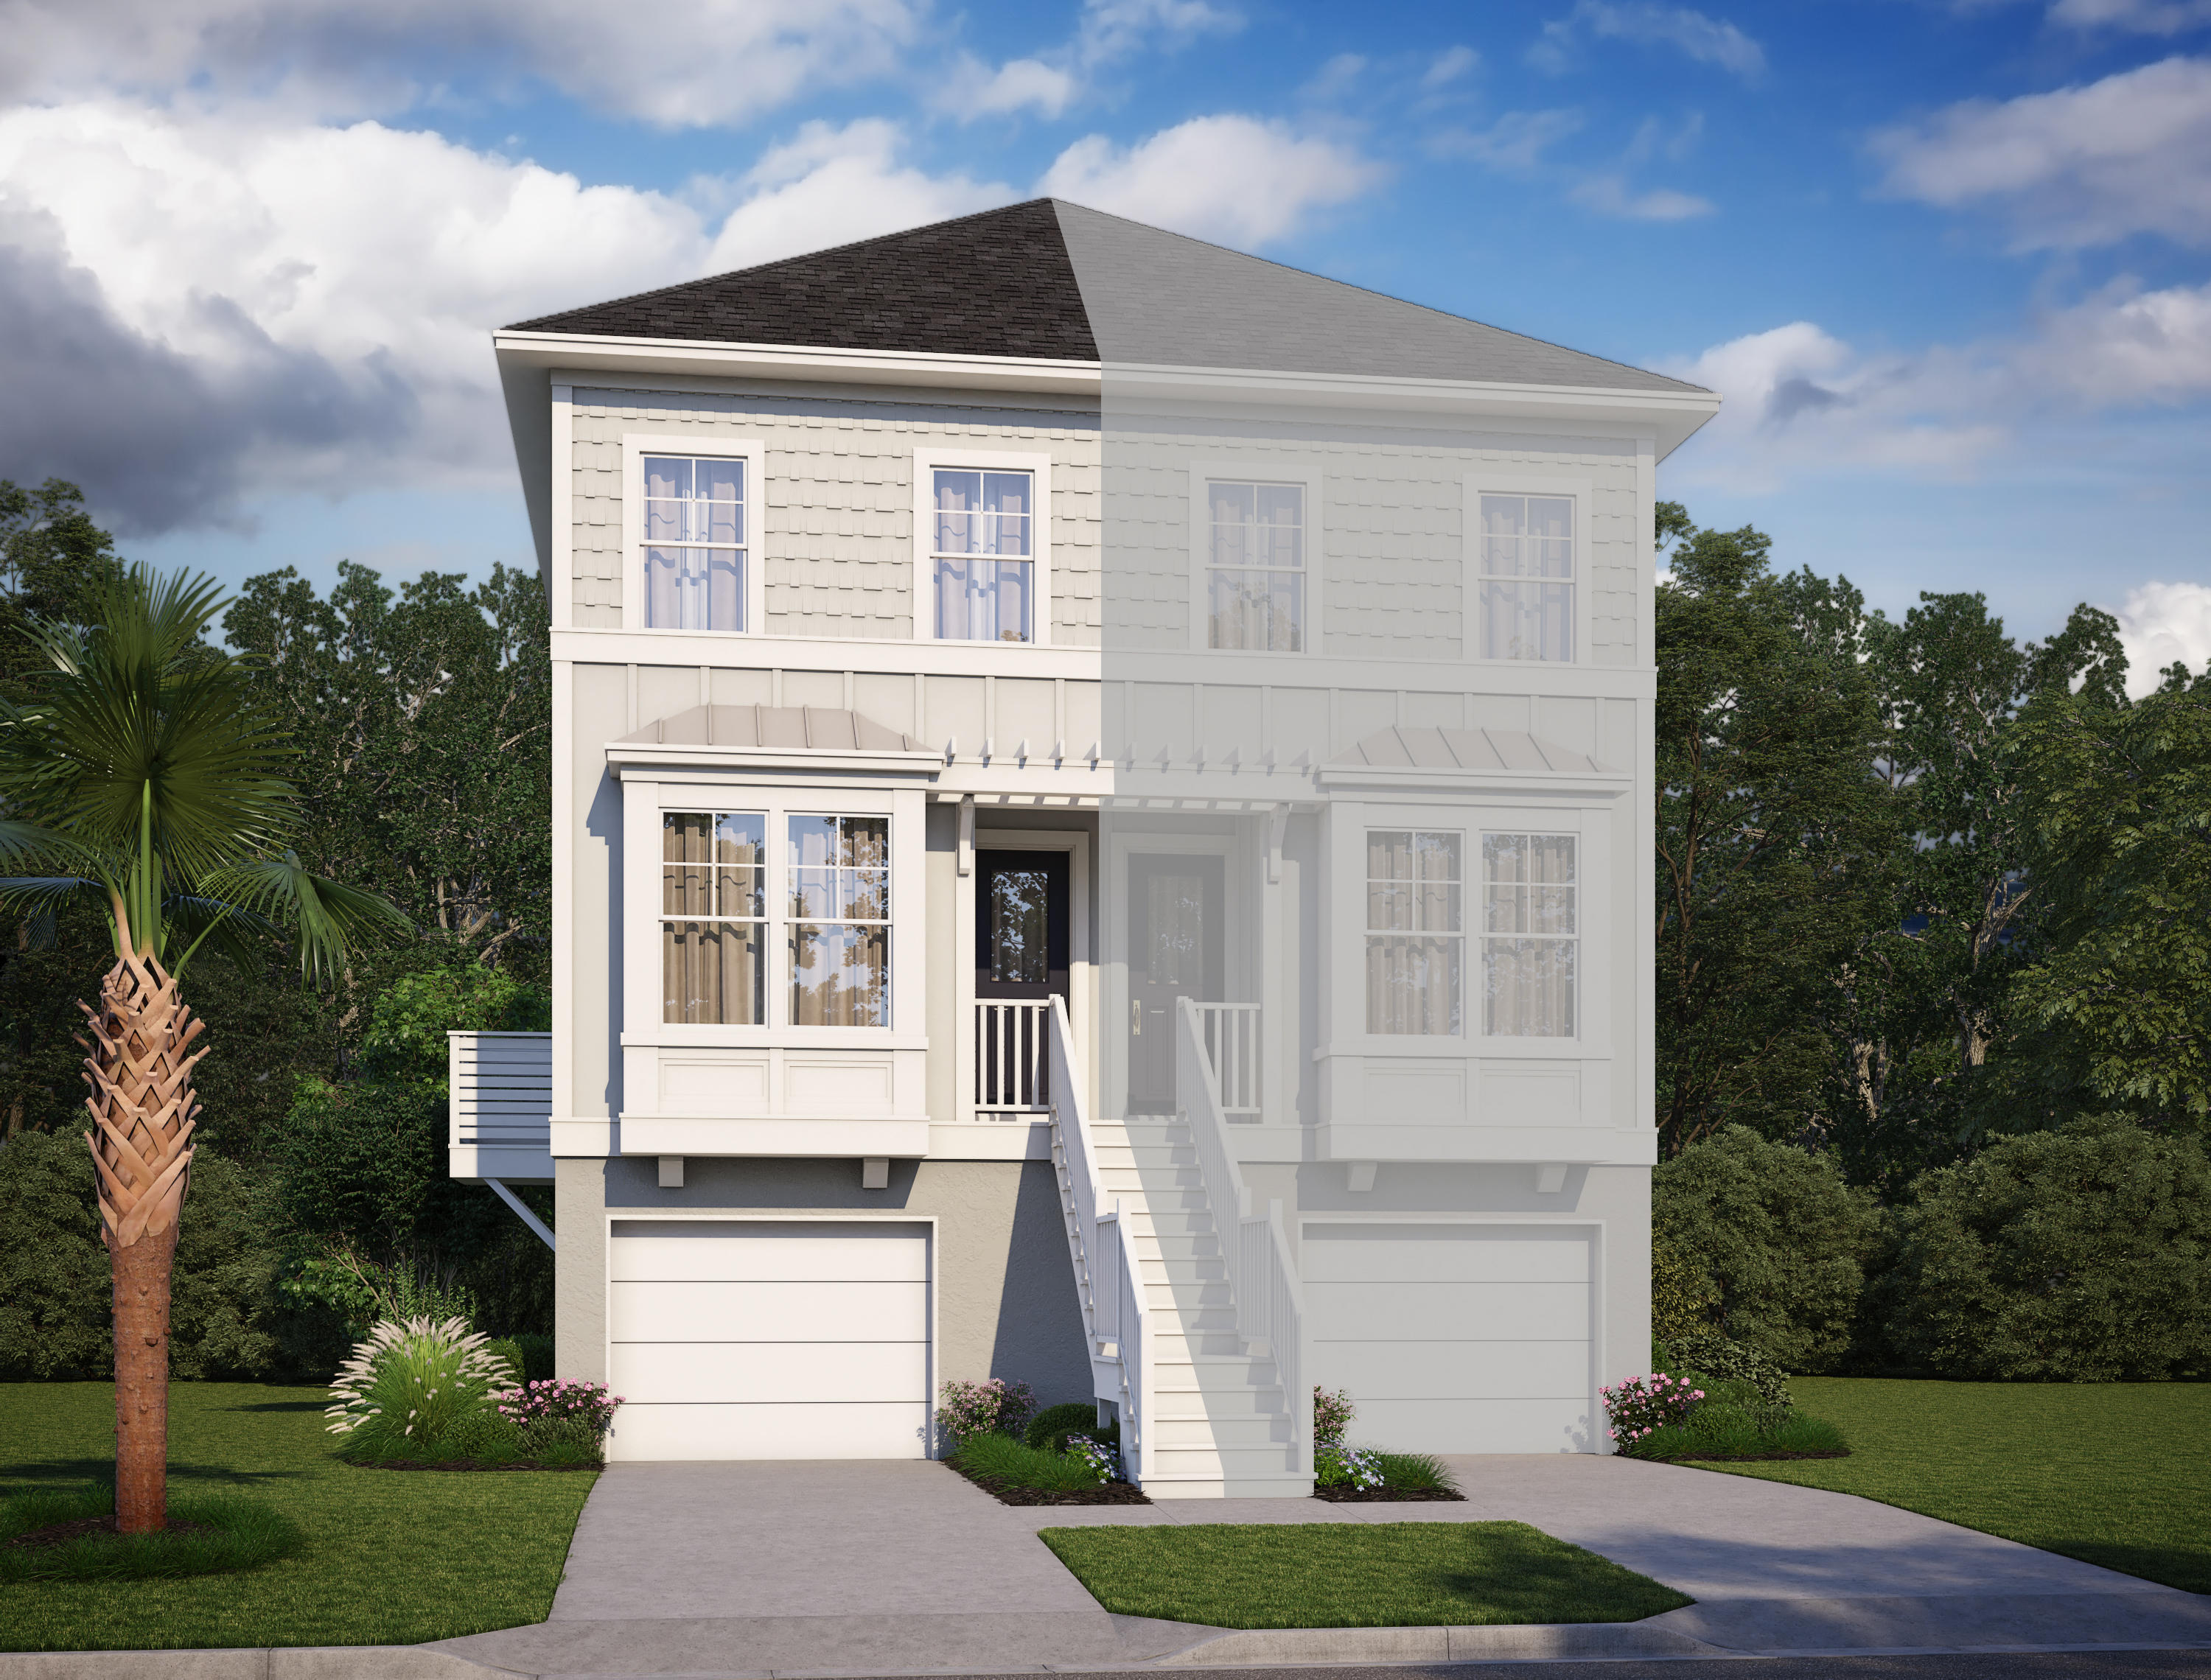 Sable On The Marsh Homes For Sale - 128 Howard Mary, Charleston, SC - 4